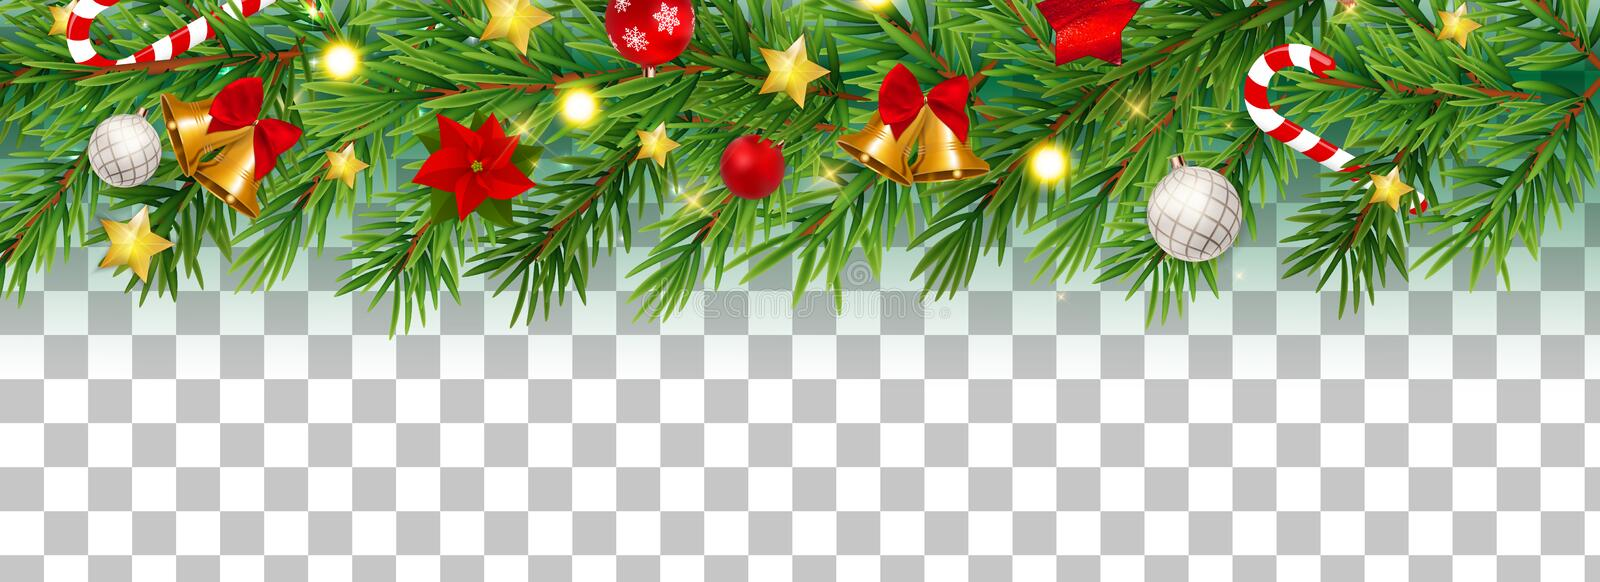 Abstract Holiday New Year and Merry Christmas Border on Transparent Background Vector Illustration royalty free illustration